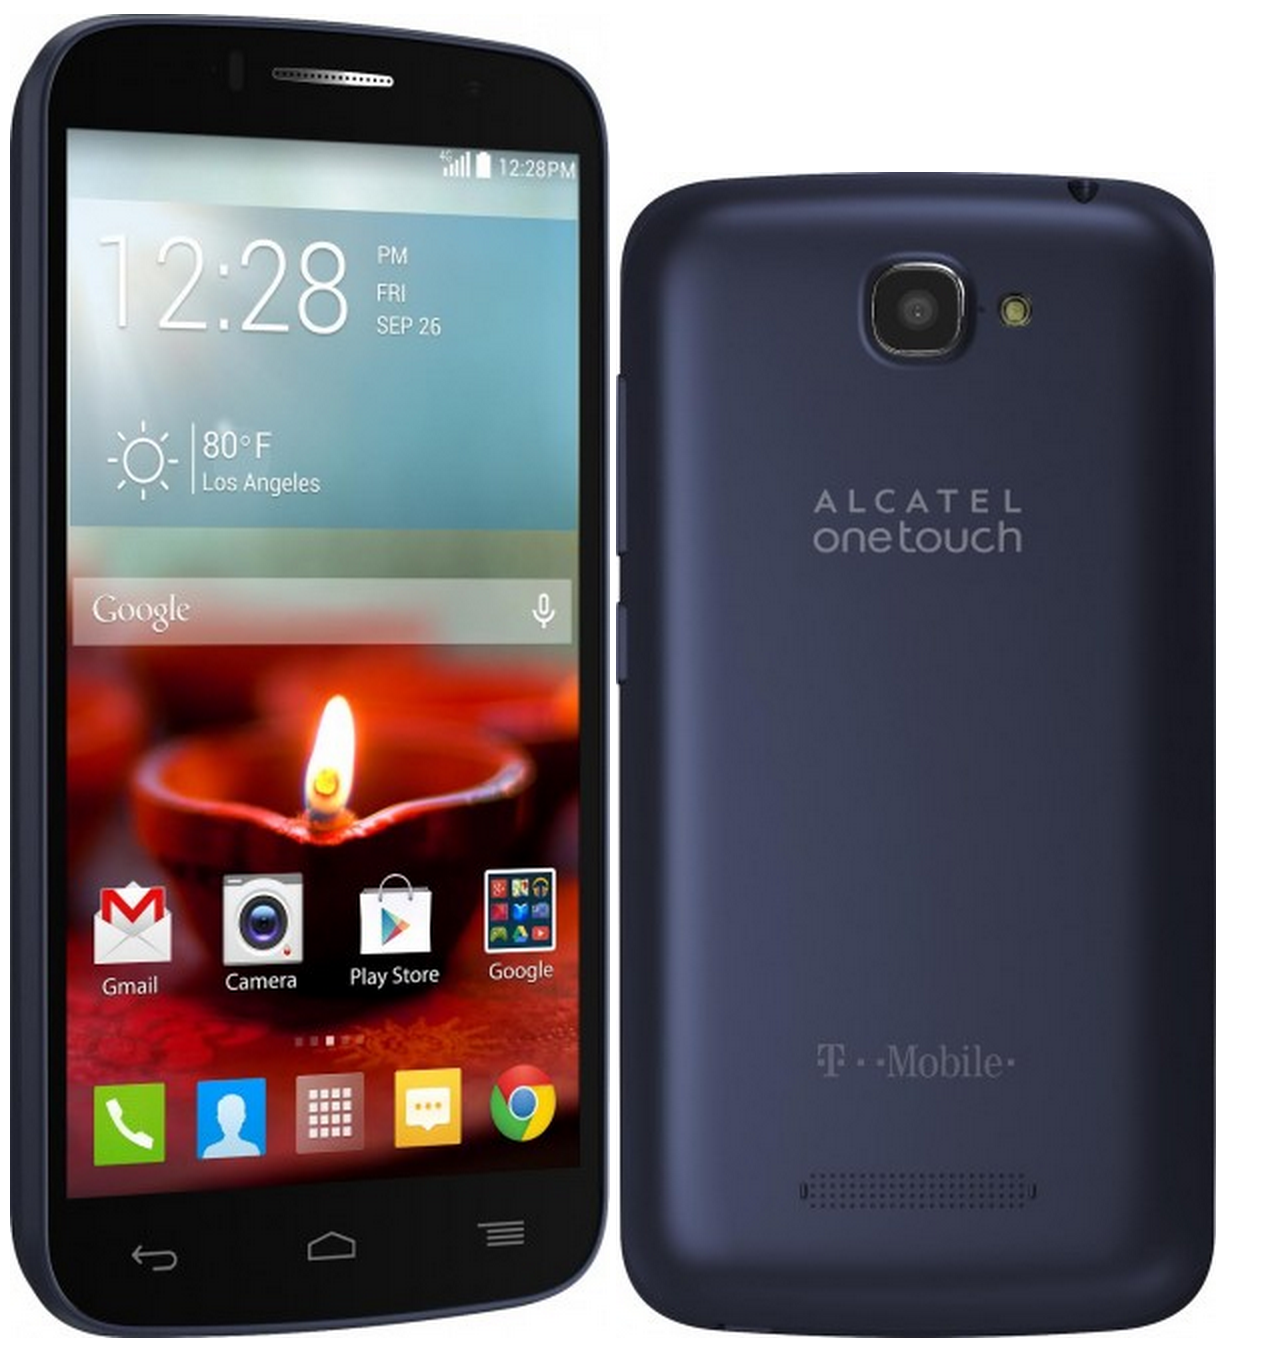 Alcatel One Touch Fierce 2 7040T for T Mobile in Blue